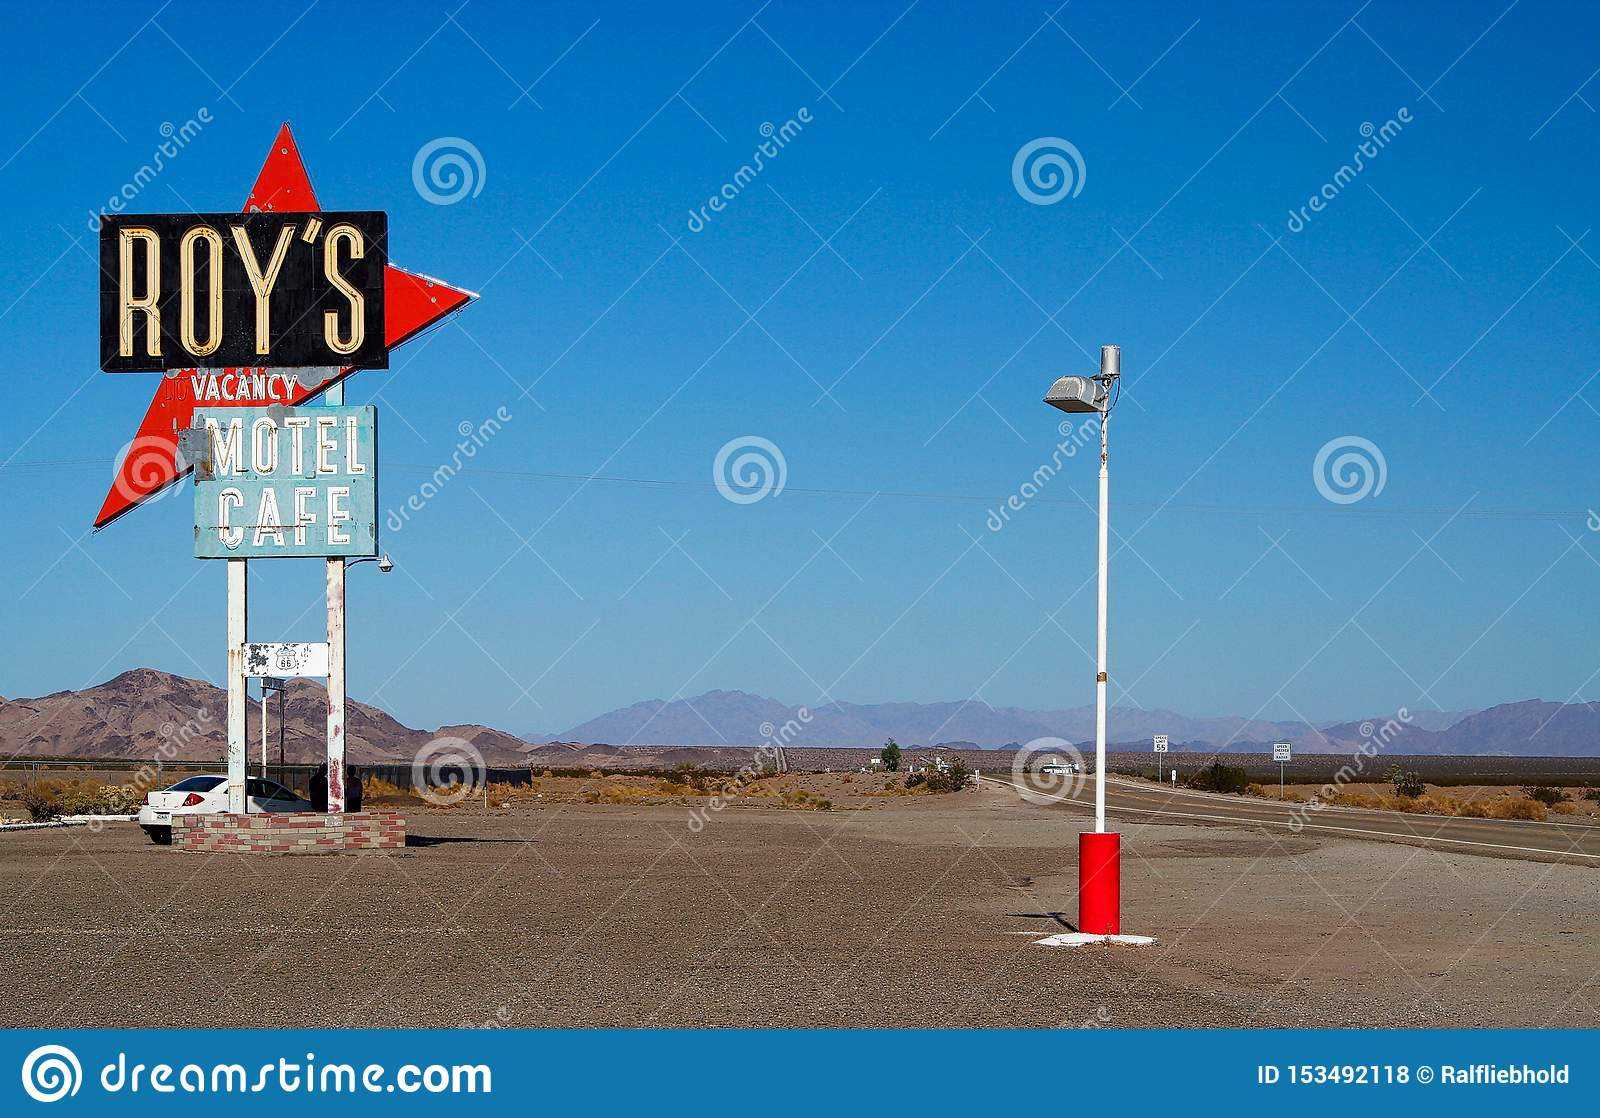 AMBOY CALIFORNIA, USA - AUGUST 8. 2009: Isolated sign of Roy´s Motel and cafe against blue sky at Route 66 with mountain range